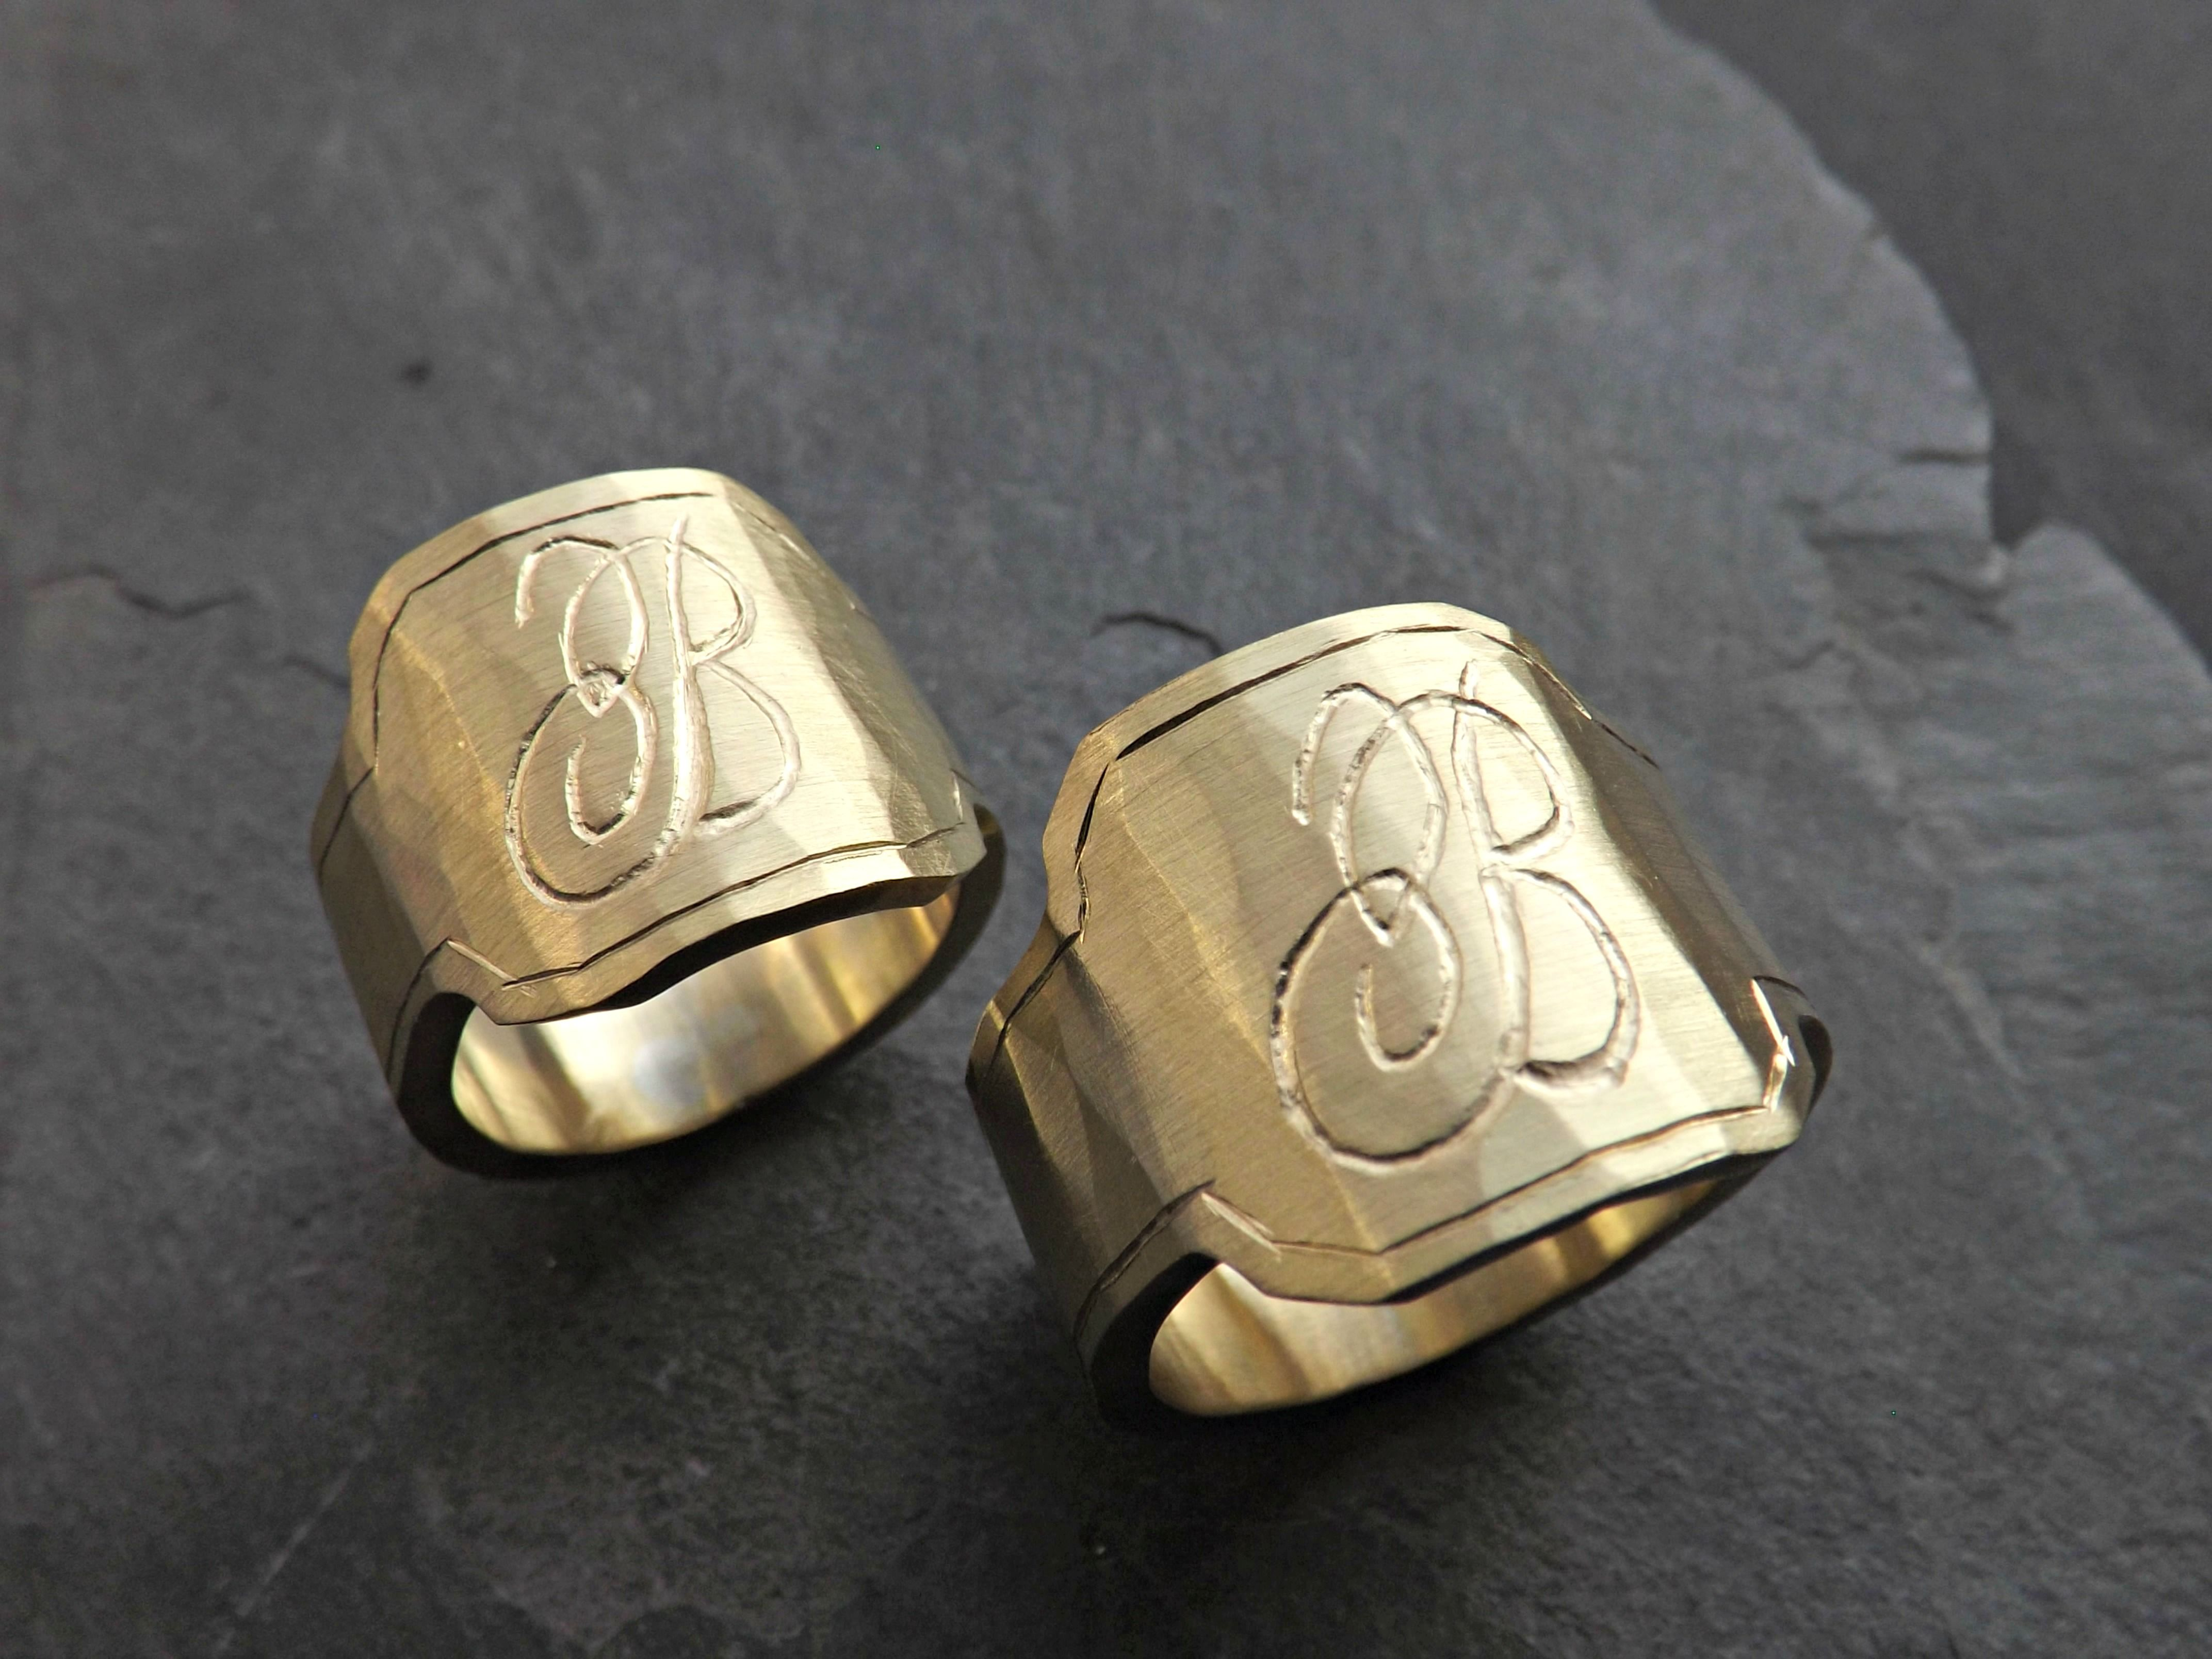 Buy a Hand Crafted Mens Signet Ring Brass Engraved